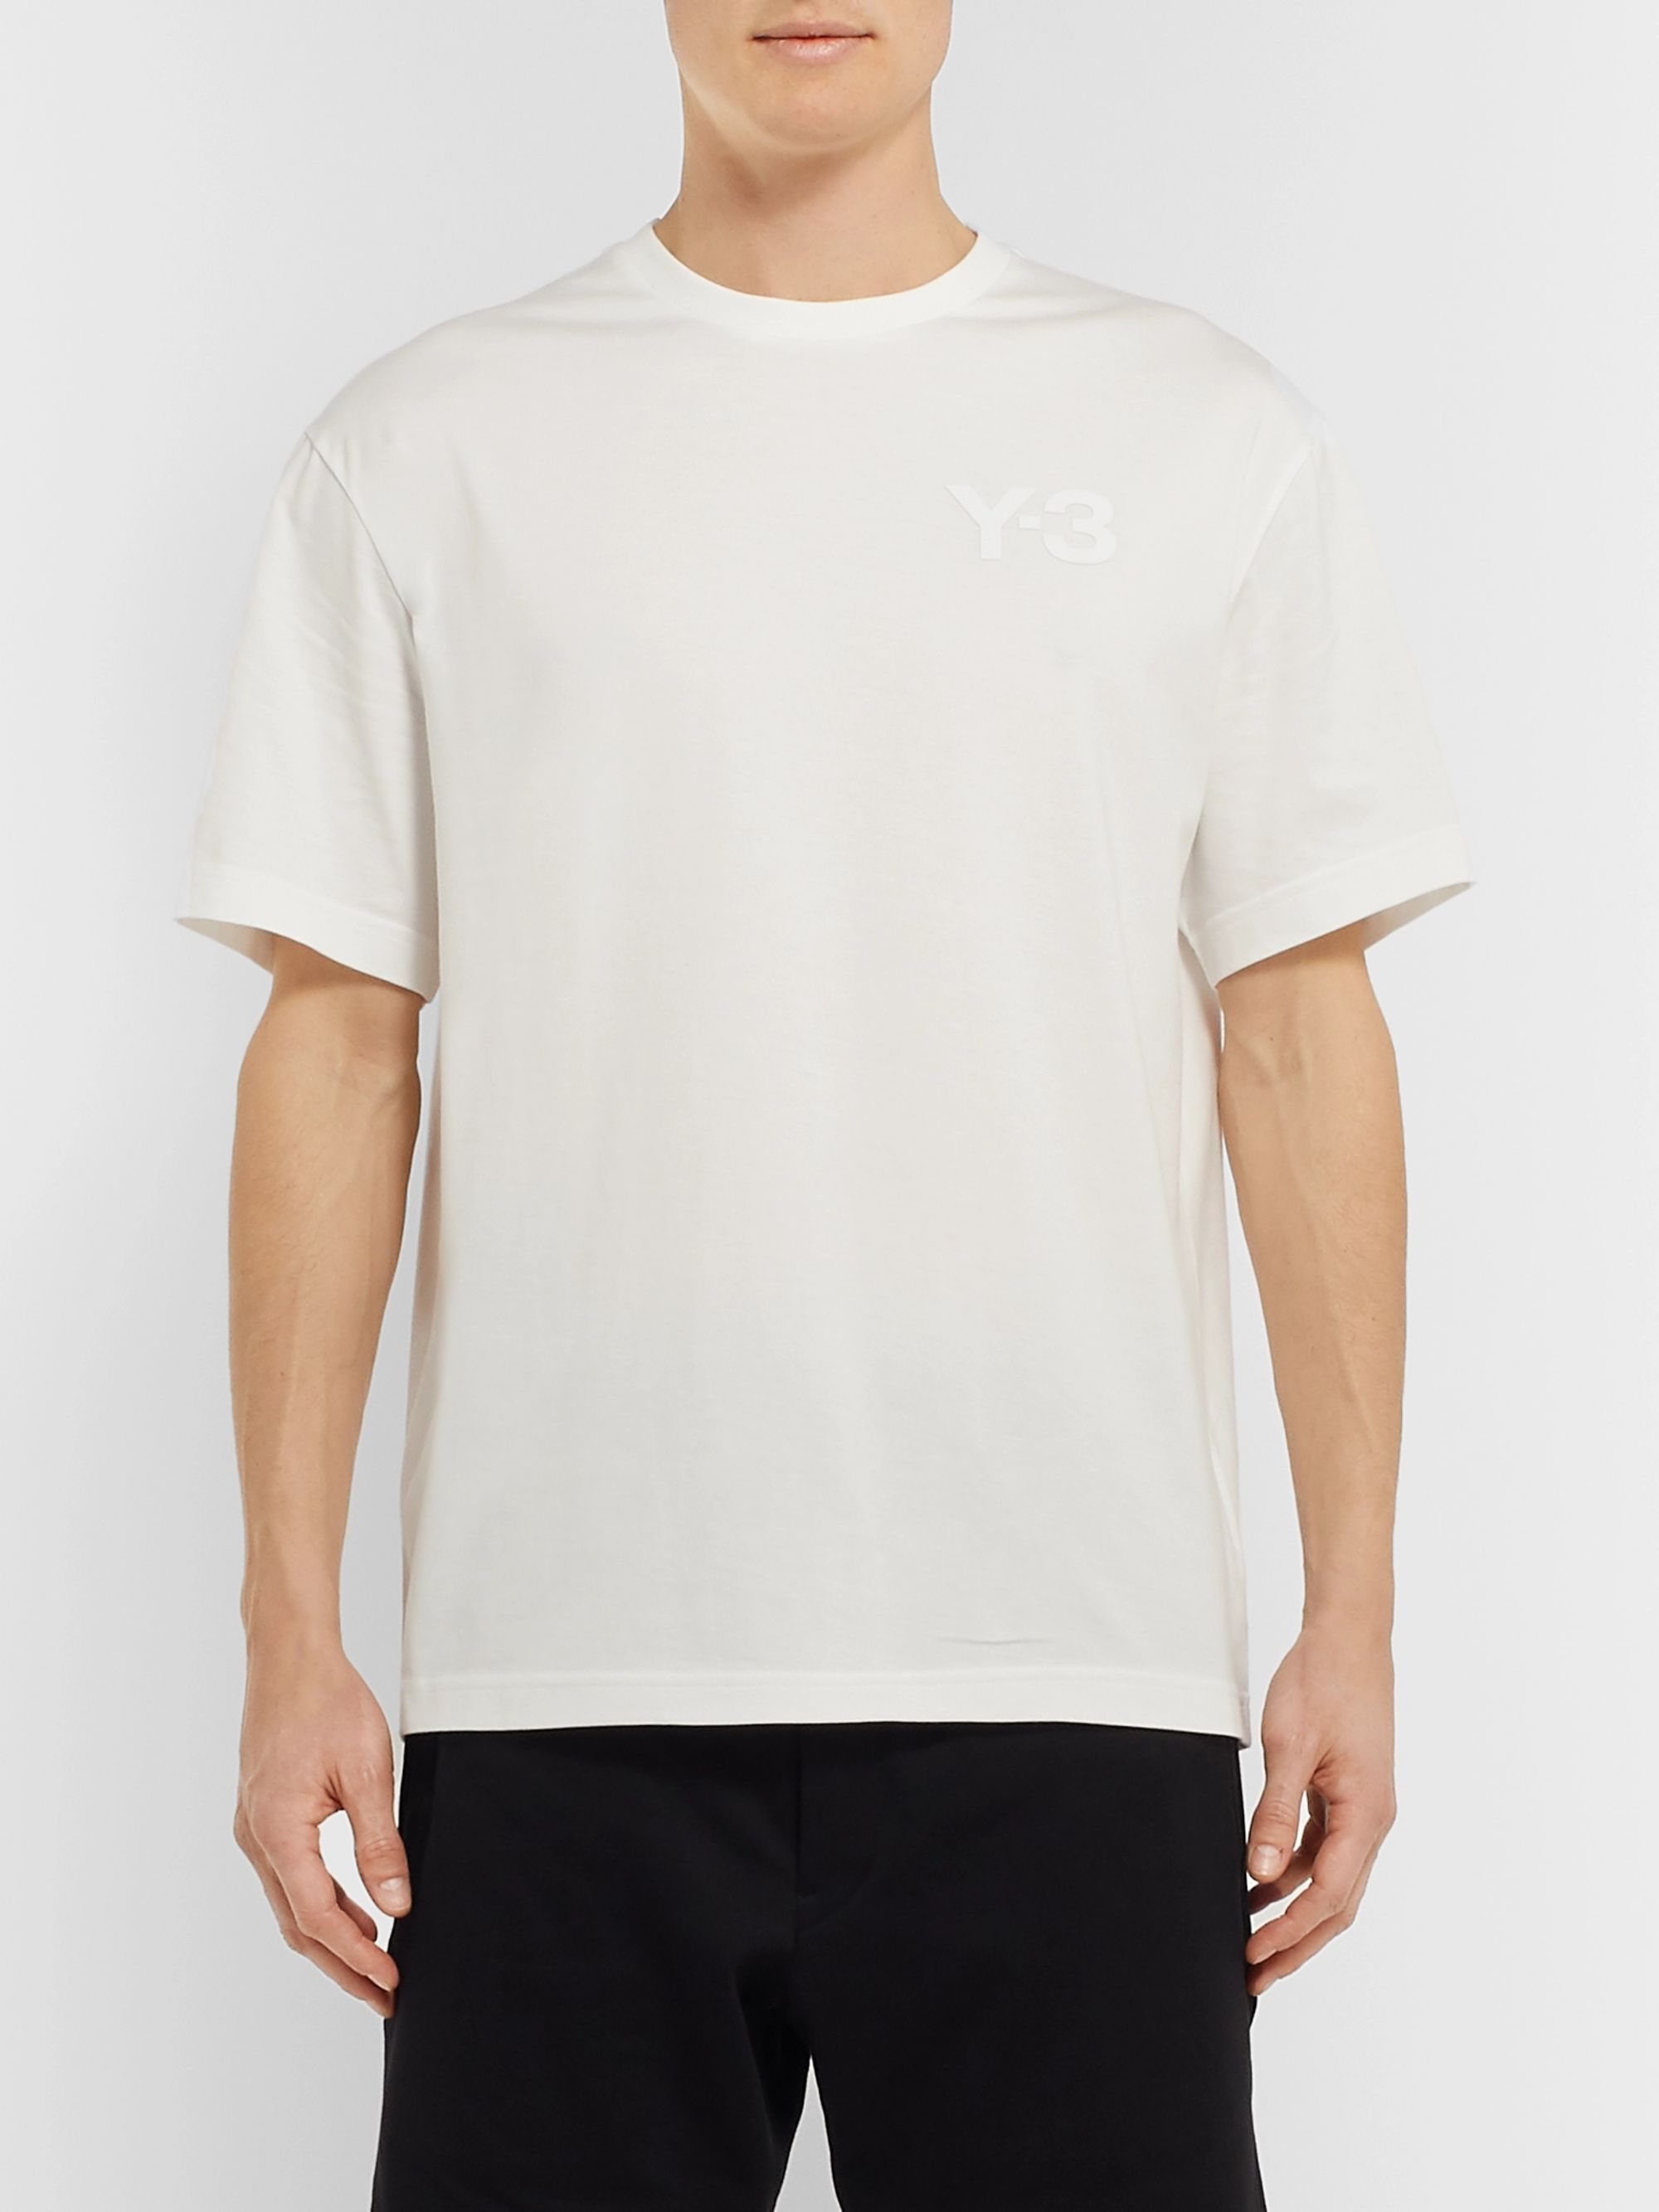 Y-3 Logo-Print Cotton-Jersey T-Shirt